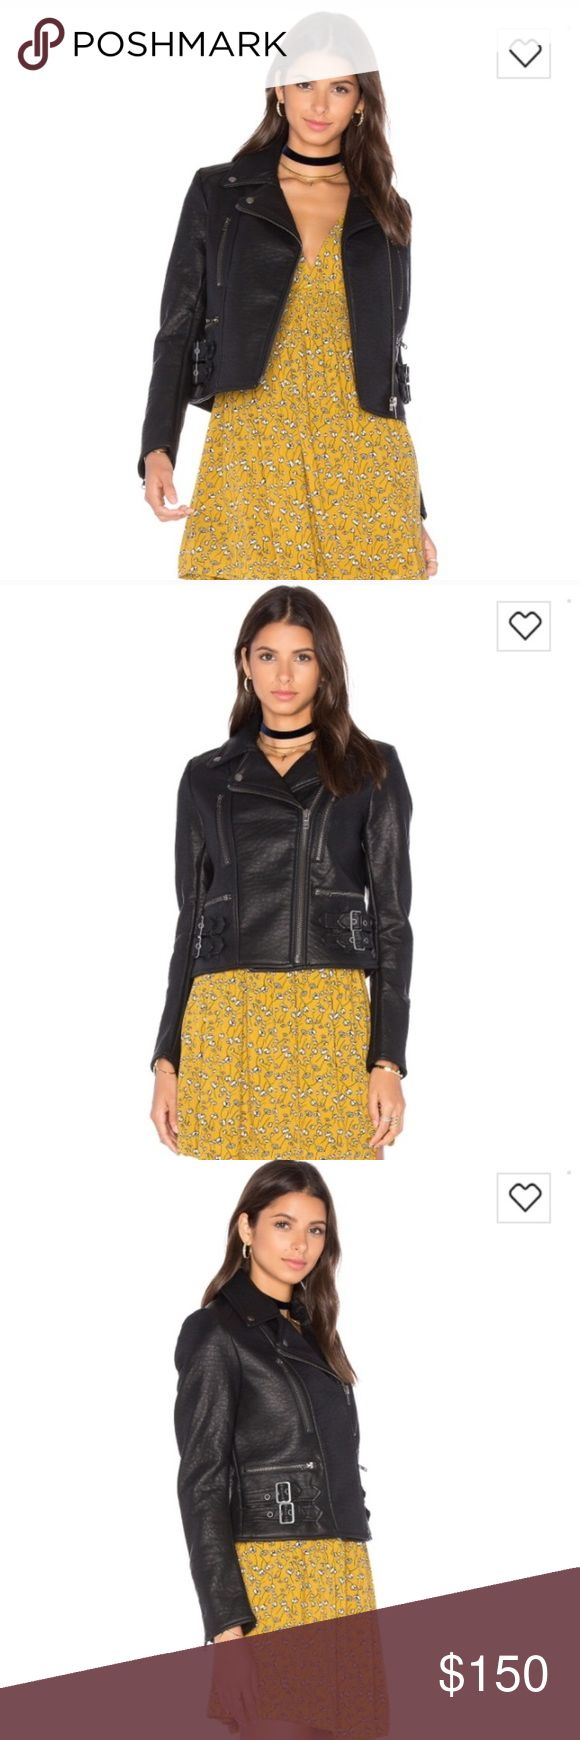 Free People Vegan Leather Jacket Brand new without tags, 100% vegan leather. No imperfections as it was only tried on, but never worn. Says size 8, but runs a little small, would be best for a small medium (6). Still for sale at Revolve for $198 Free People Jackets & Coats